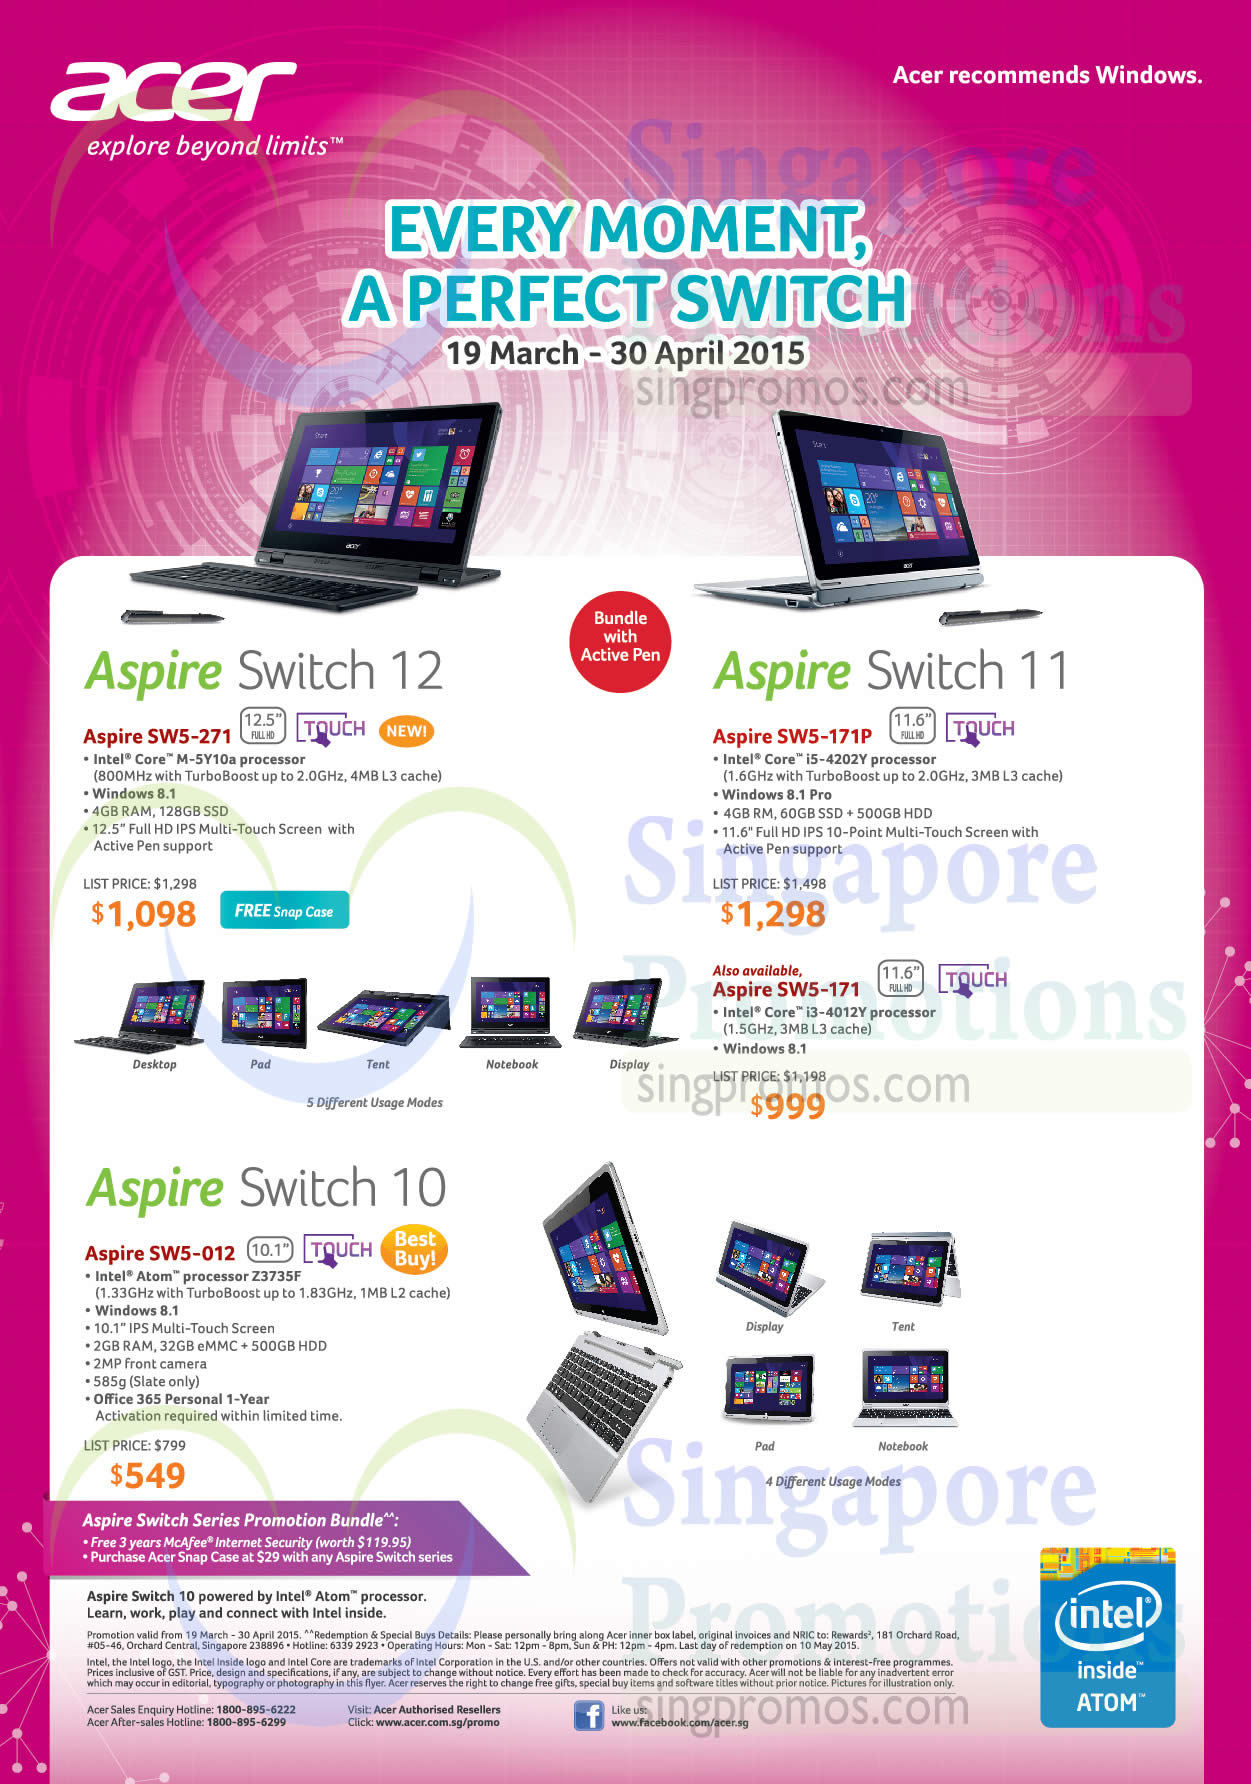 Acer Aspire SW5-271 Tablet, Acer Aspire SW5-171P Tablet, Acer Aspire SW5-171 Tablet, Acer Aspire SW5-012 Tablet